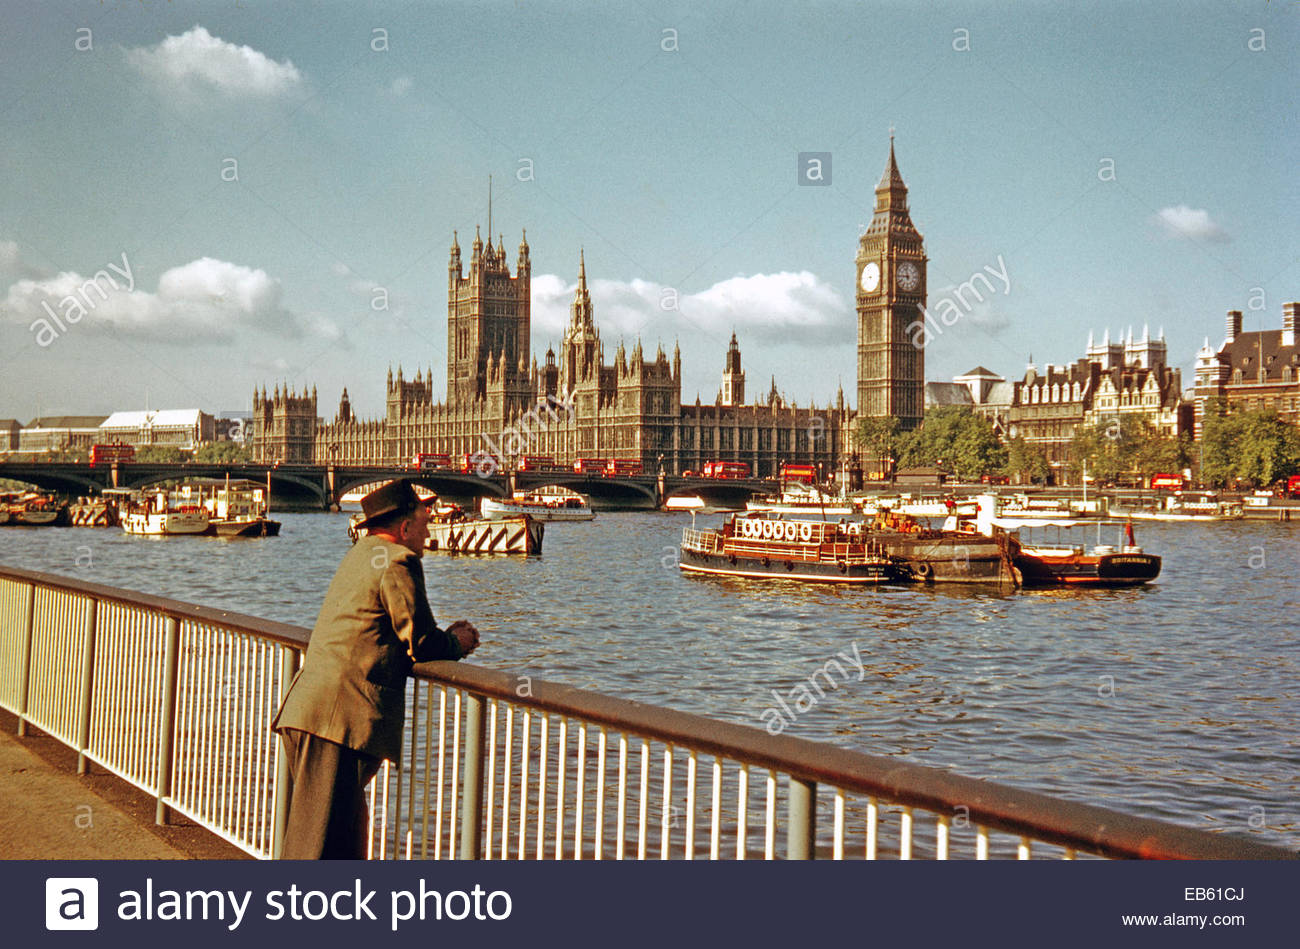 Man leans on railings at South Bank looking across River Thames towards Houses of Parliament 1950's - Stock Image